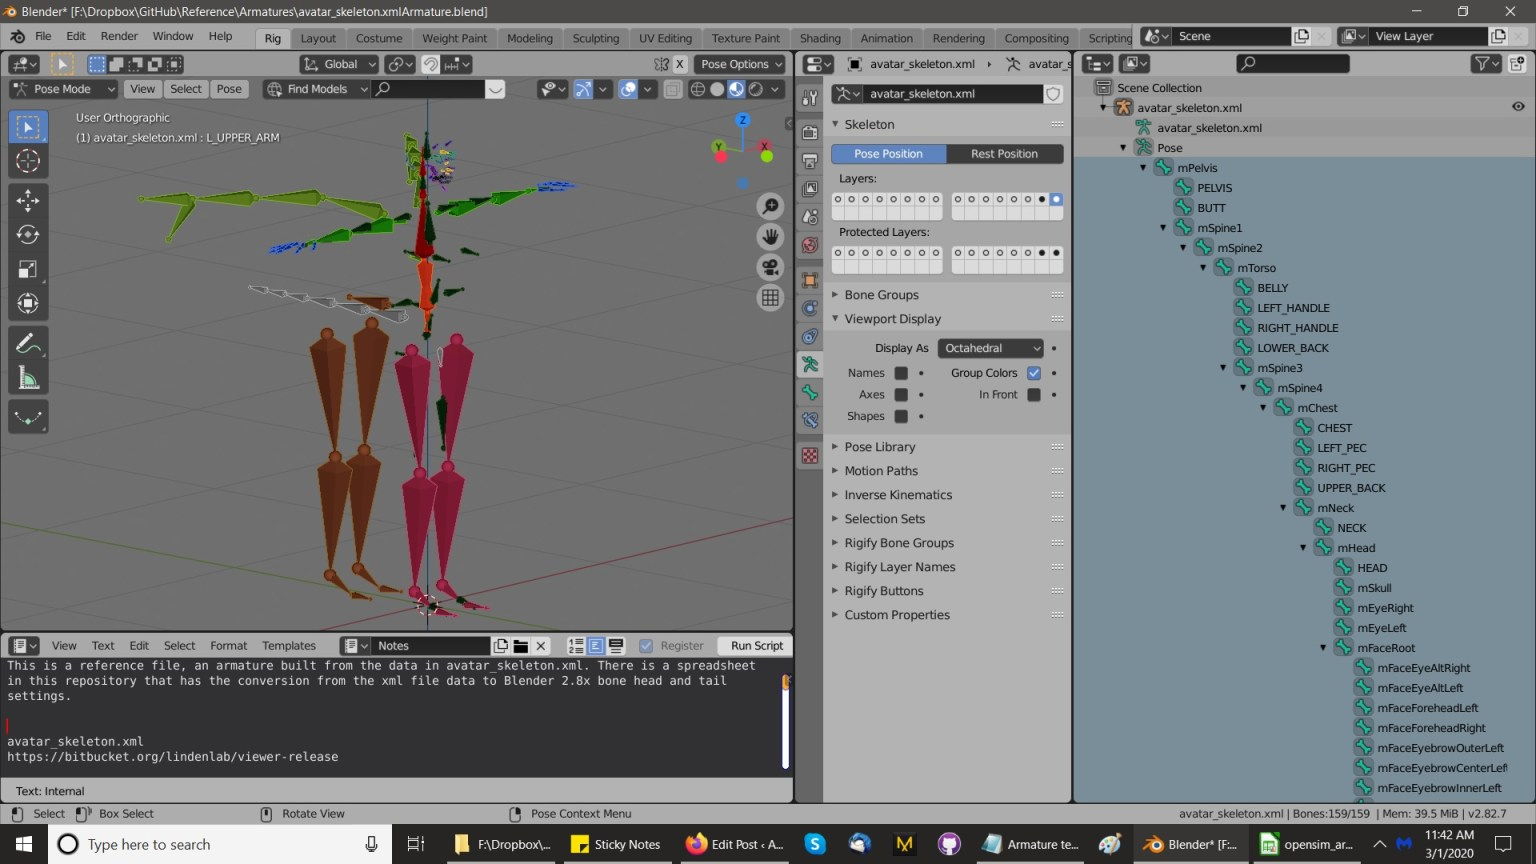 How to build the Bento armature in Blender 2.8x, part 1